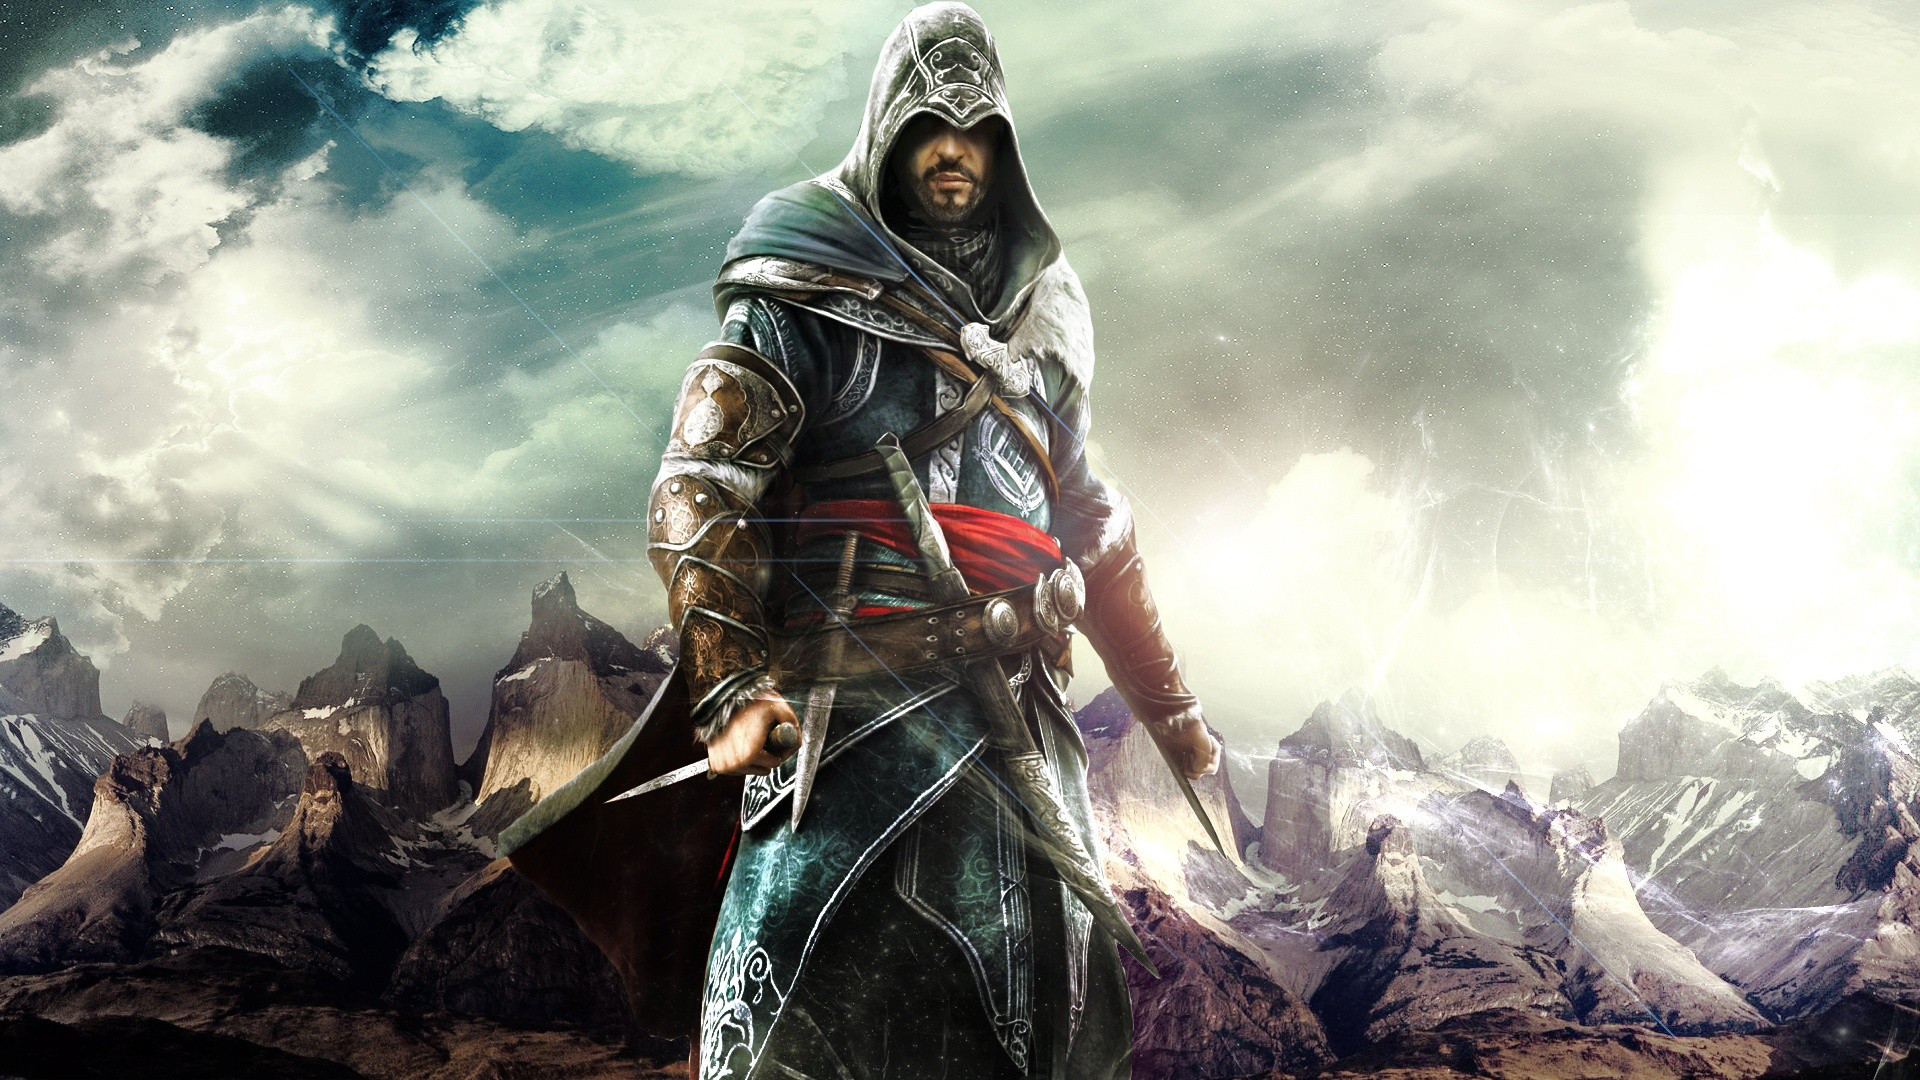 hd wallpaper Games Wallpapers For Mac Ezio The Best Assassin 1920x1080